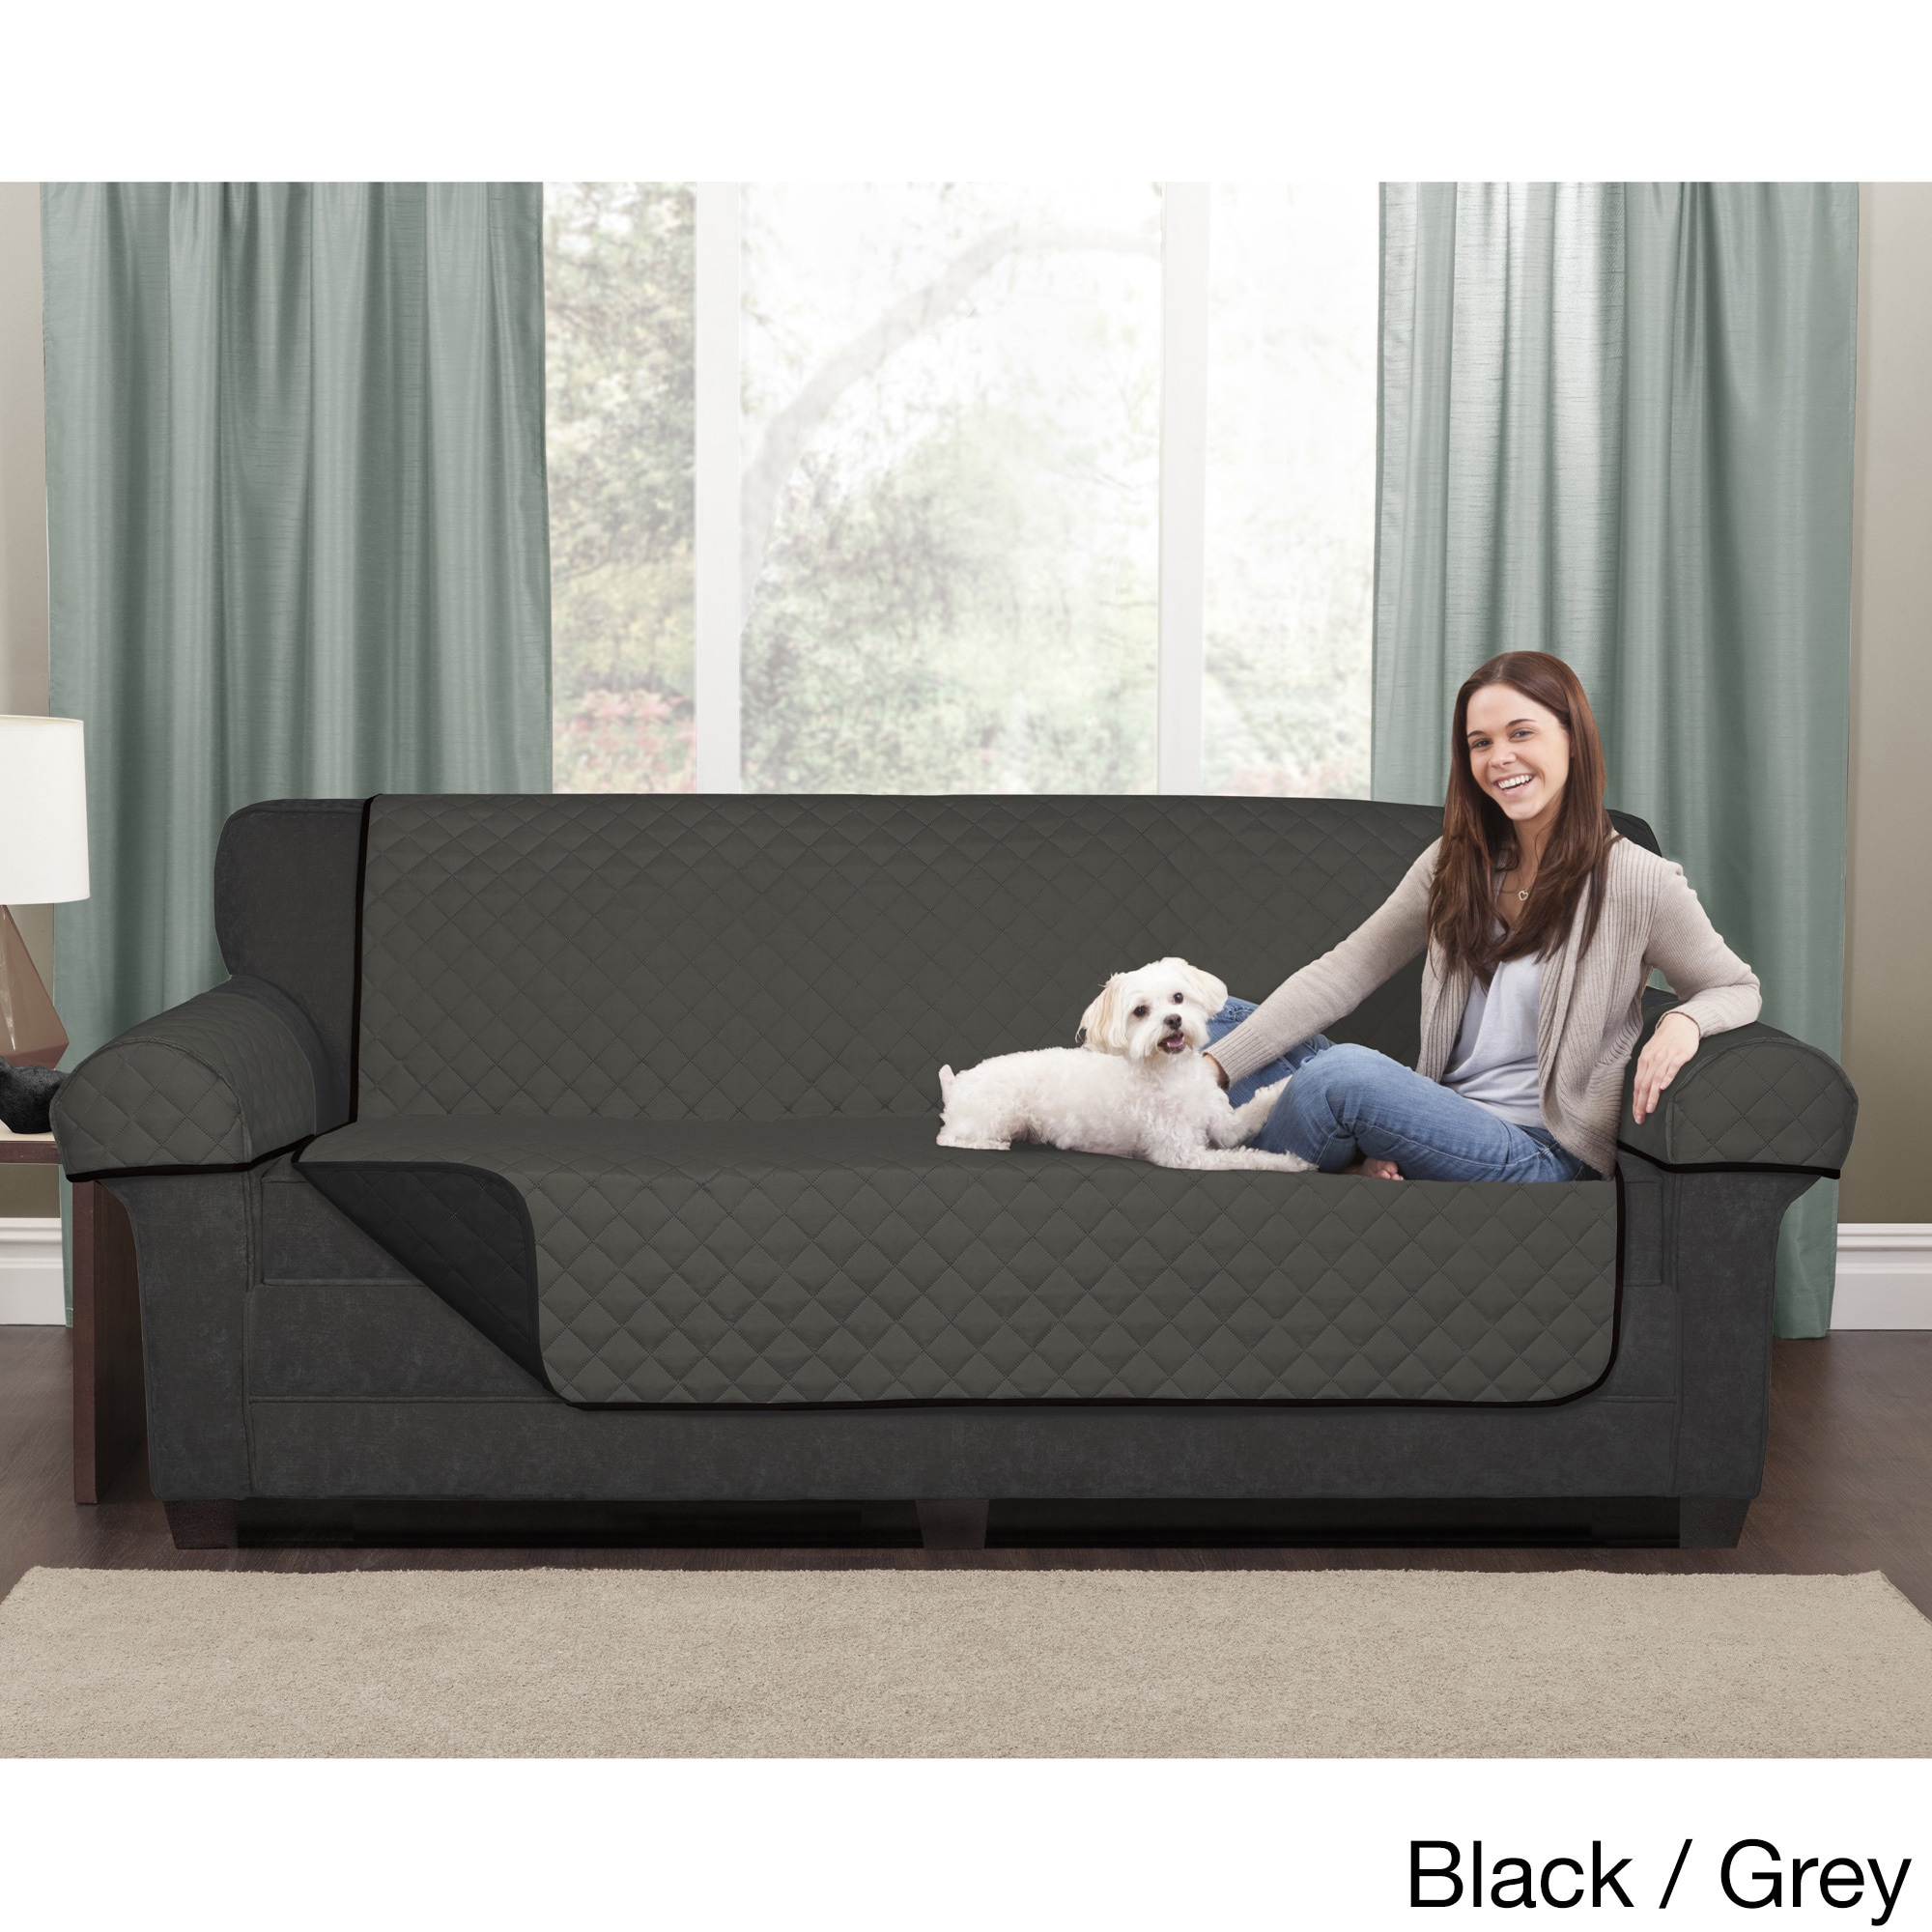 Maytex Reversible Microfiber Sofa Pet Furniture Cover 64 5x69 Without Arms Free Shipping On Orders Over 45 11177529